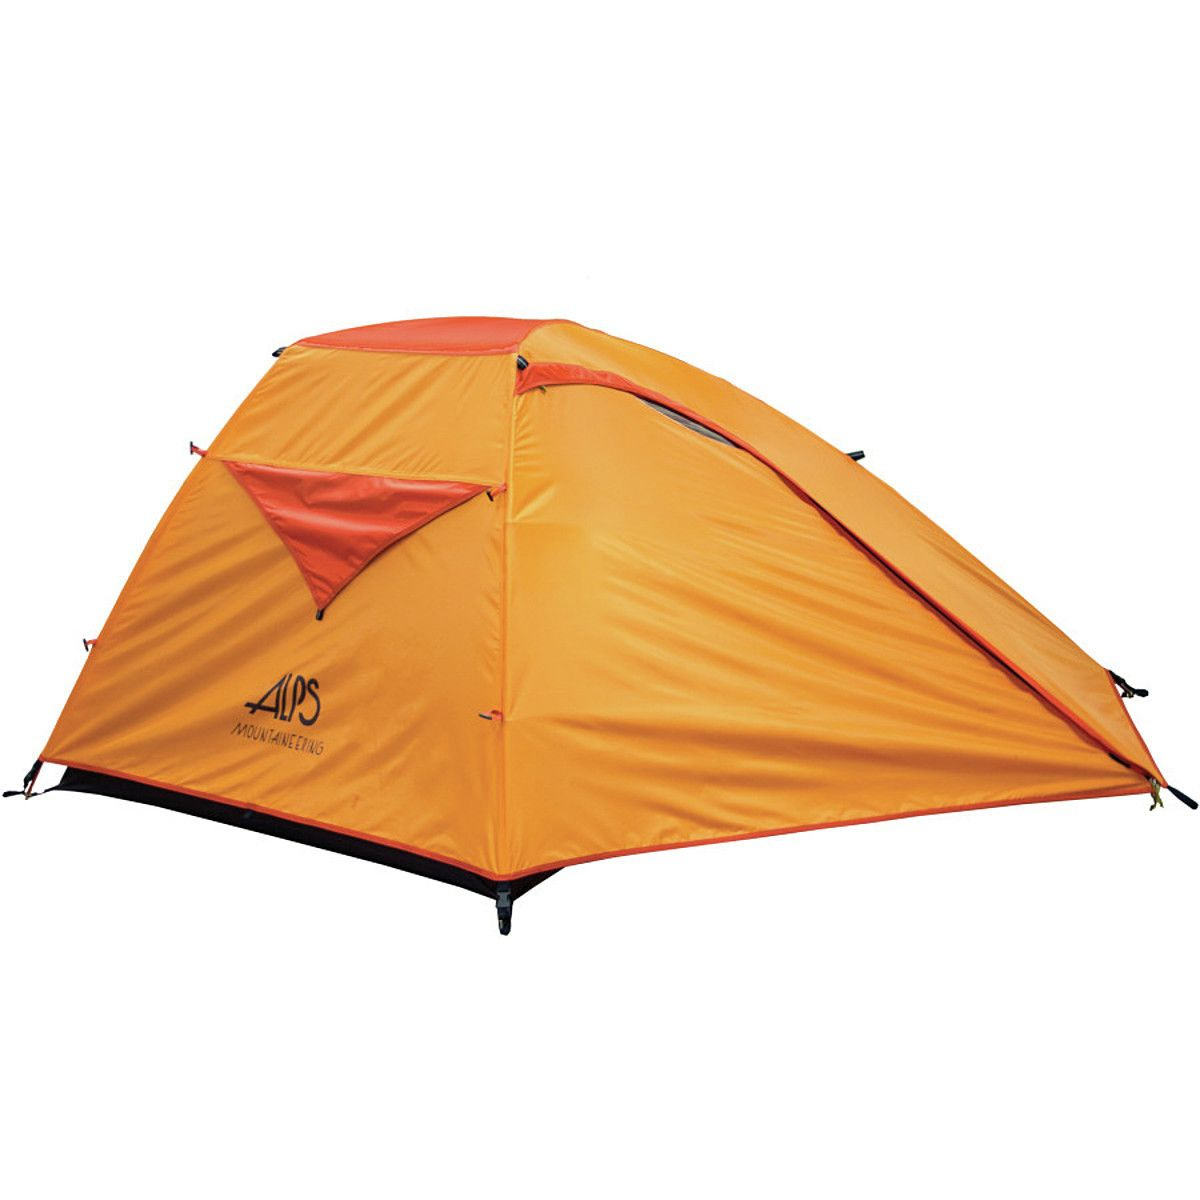 ALPS Mountaineering Zephyr 3.0